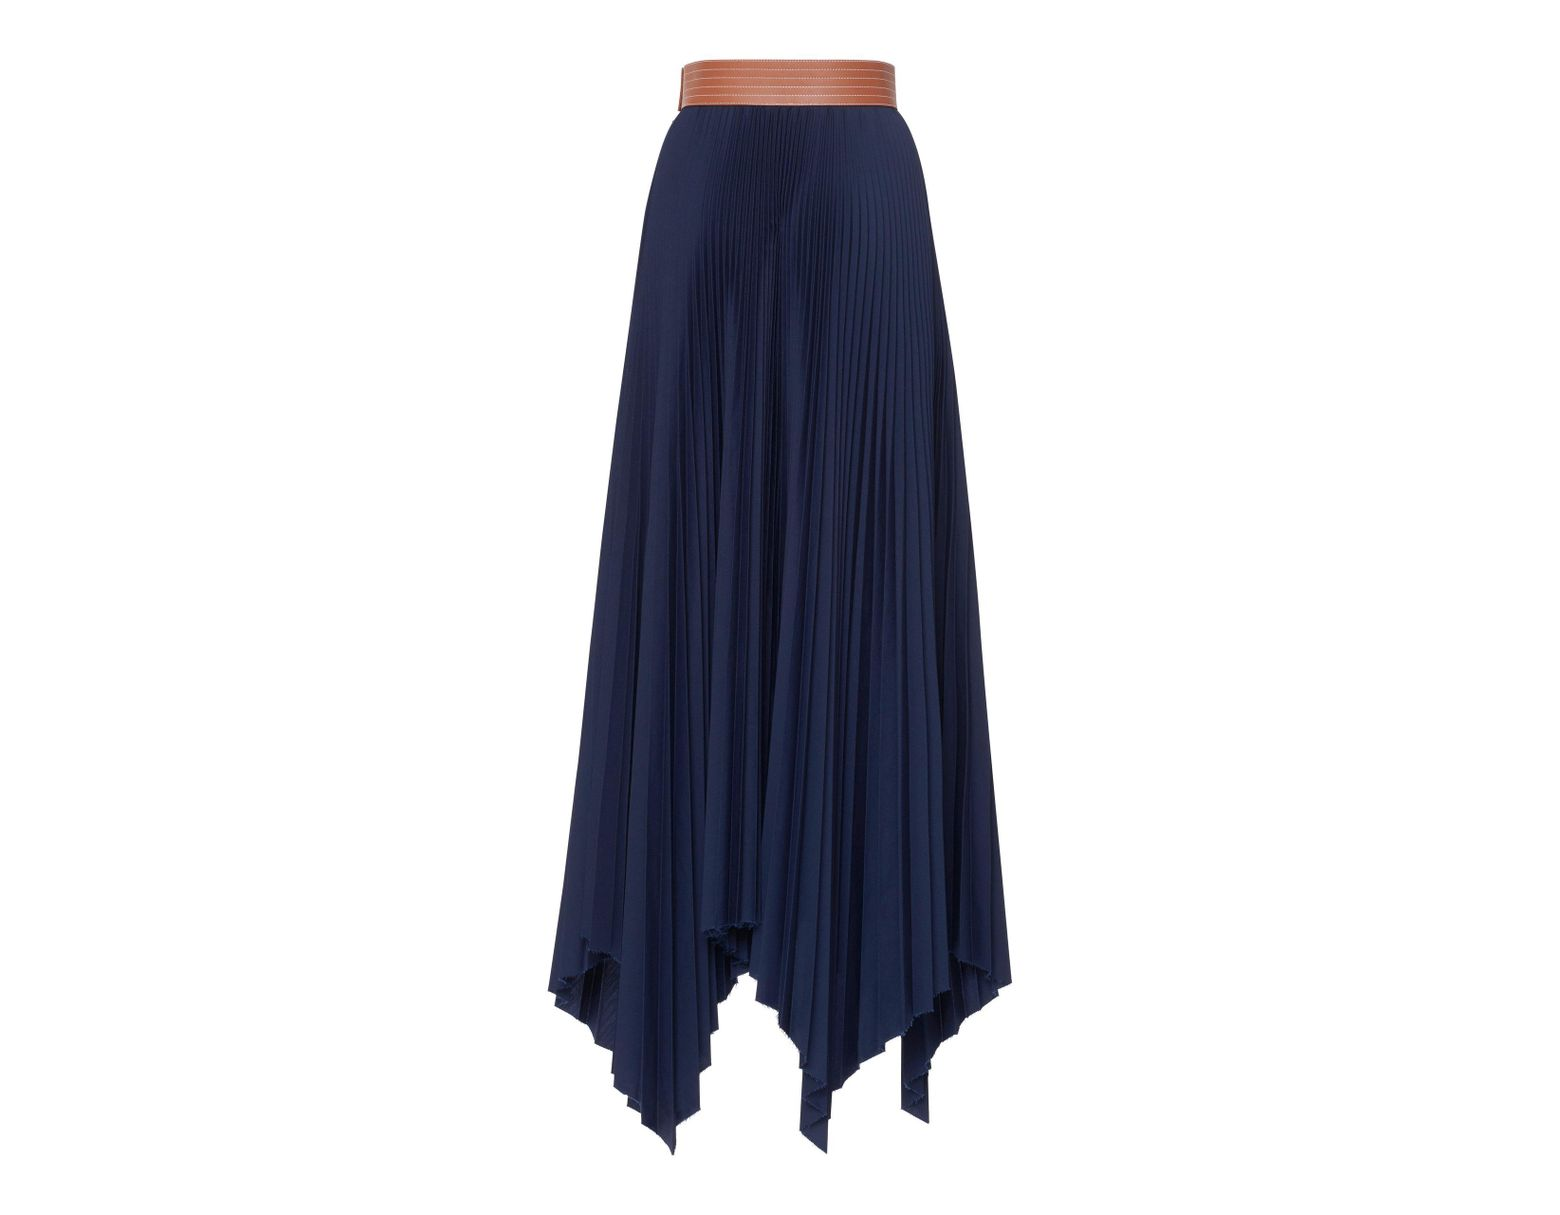 d26c94e24c56 Loewe Pleated Maxi Skirt in Blue - Save 75% - Lyst